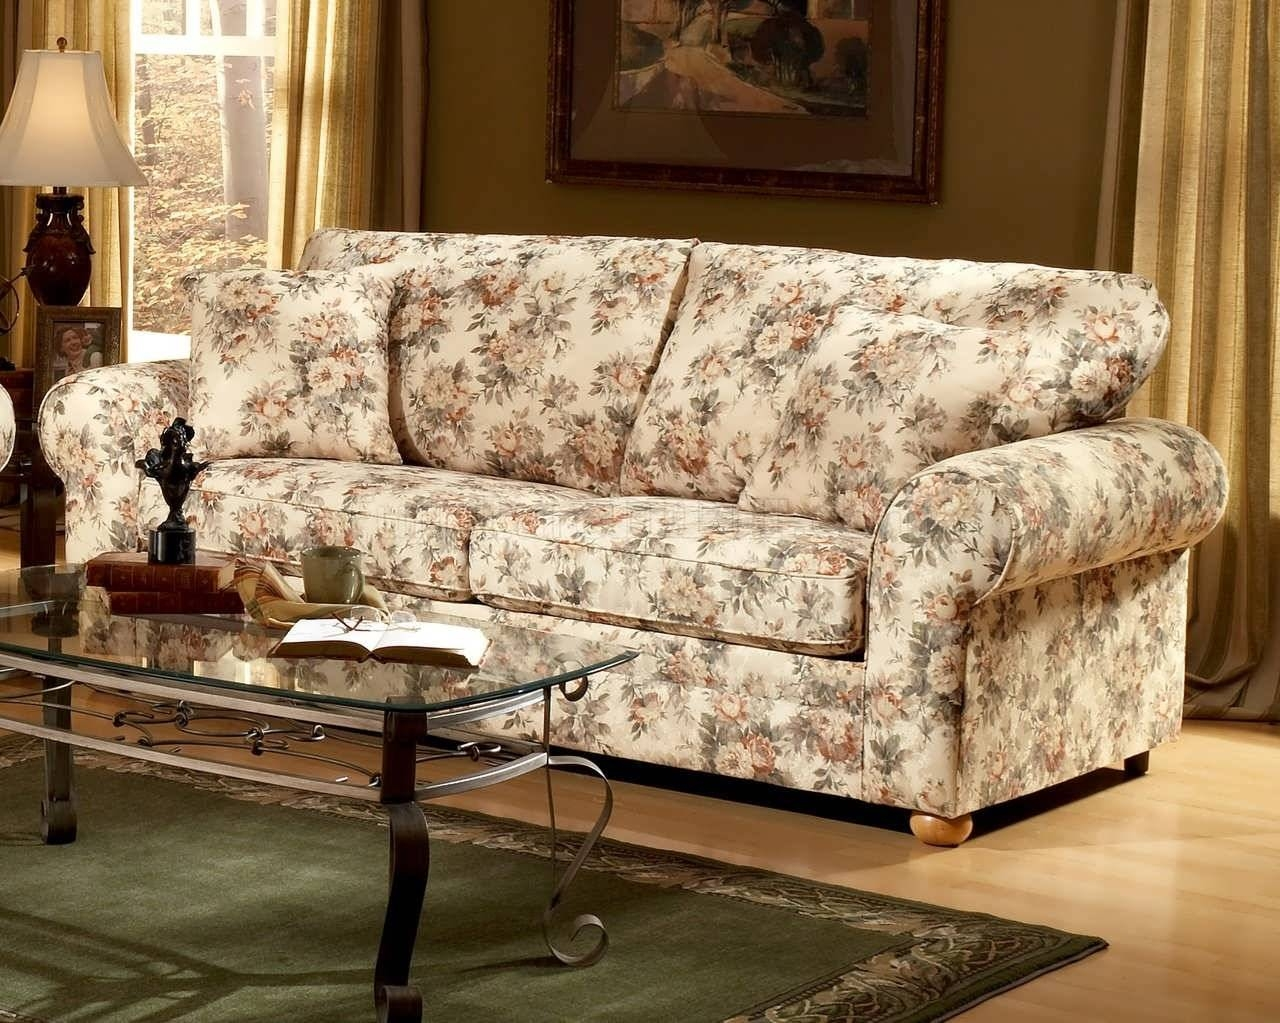 Sofa : Modern Sofa Bed Sofa Slipcovers Living Room Furniture regarding Floral Slipcovers (Image 8 of 15)